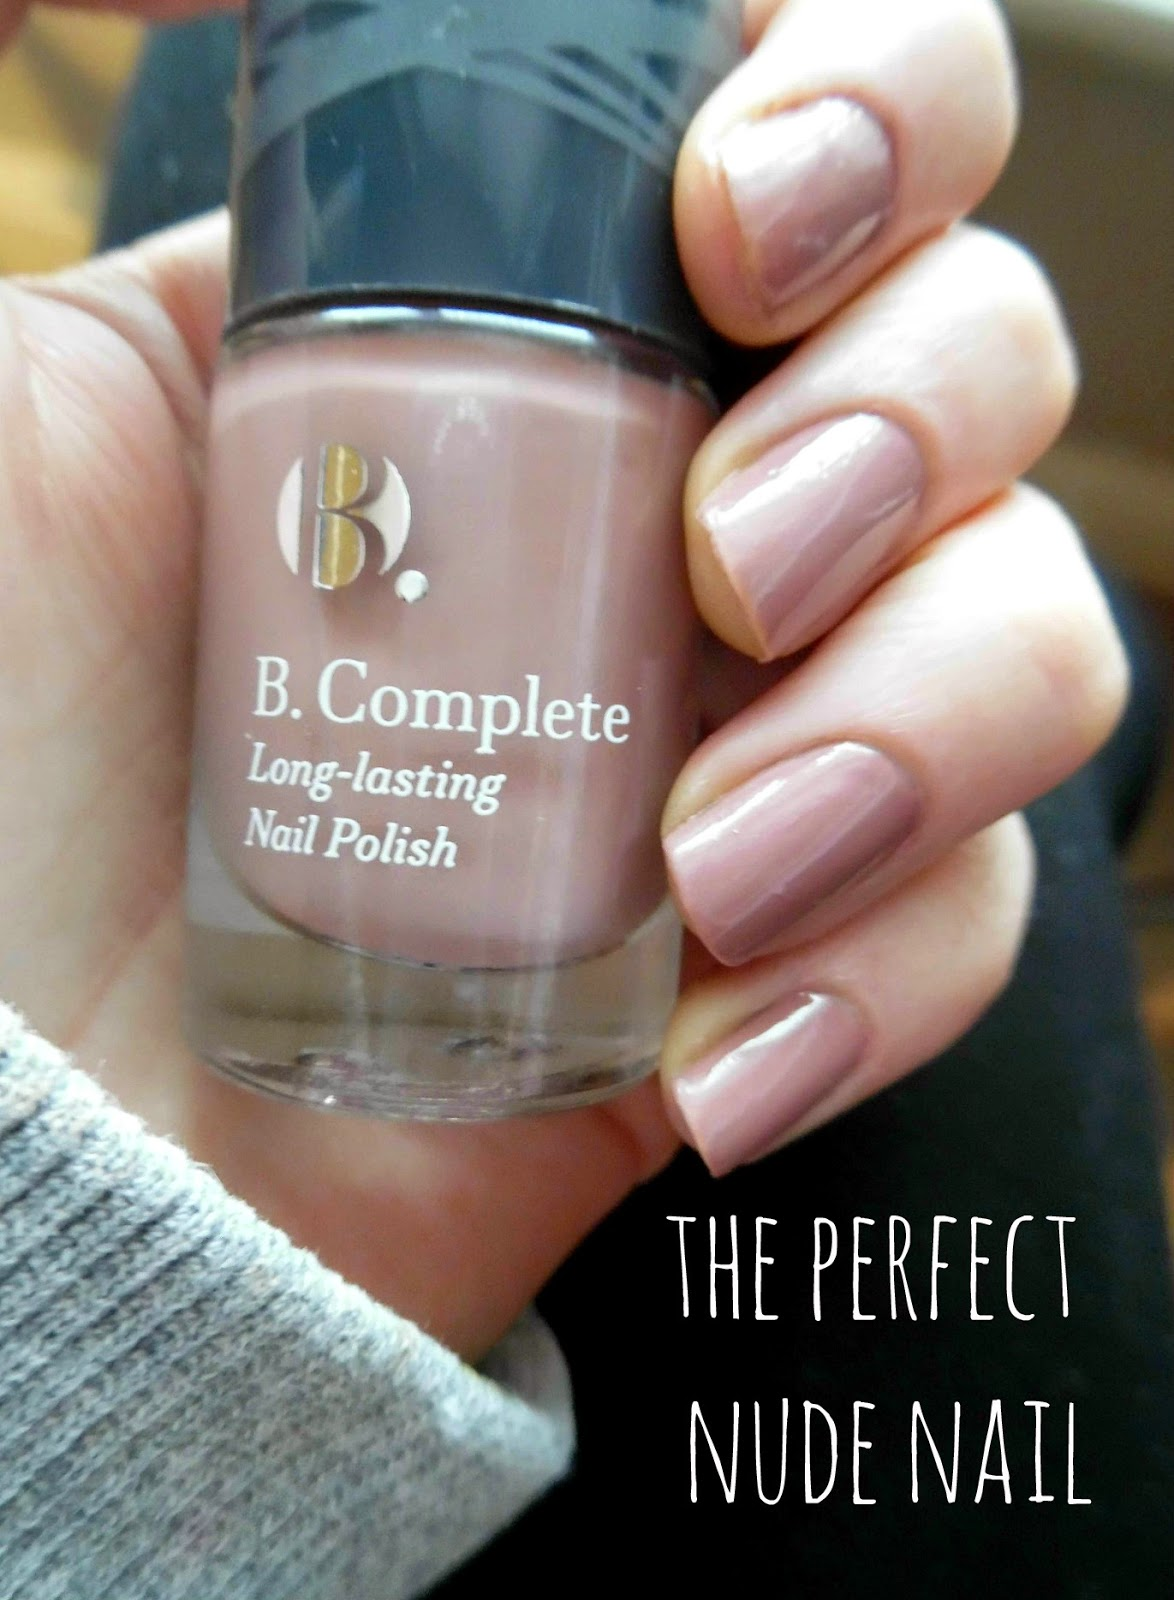 Nail Polish Reviews Long Lasting - CrossfitHPU